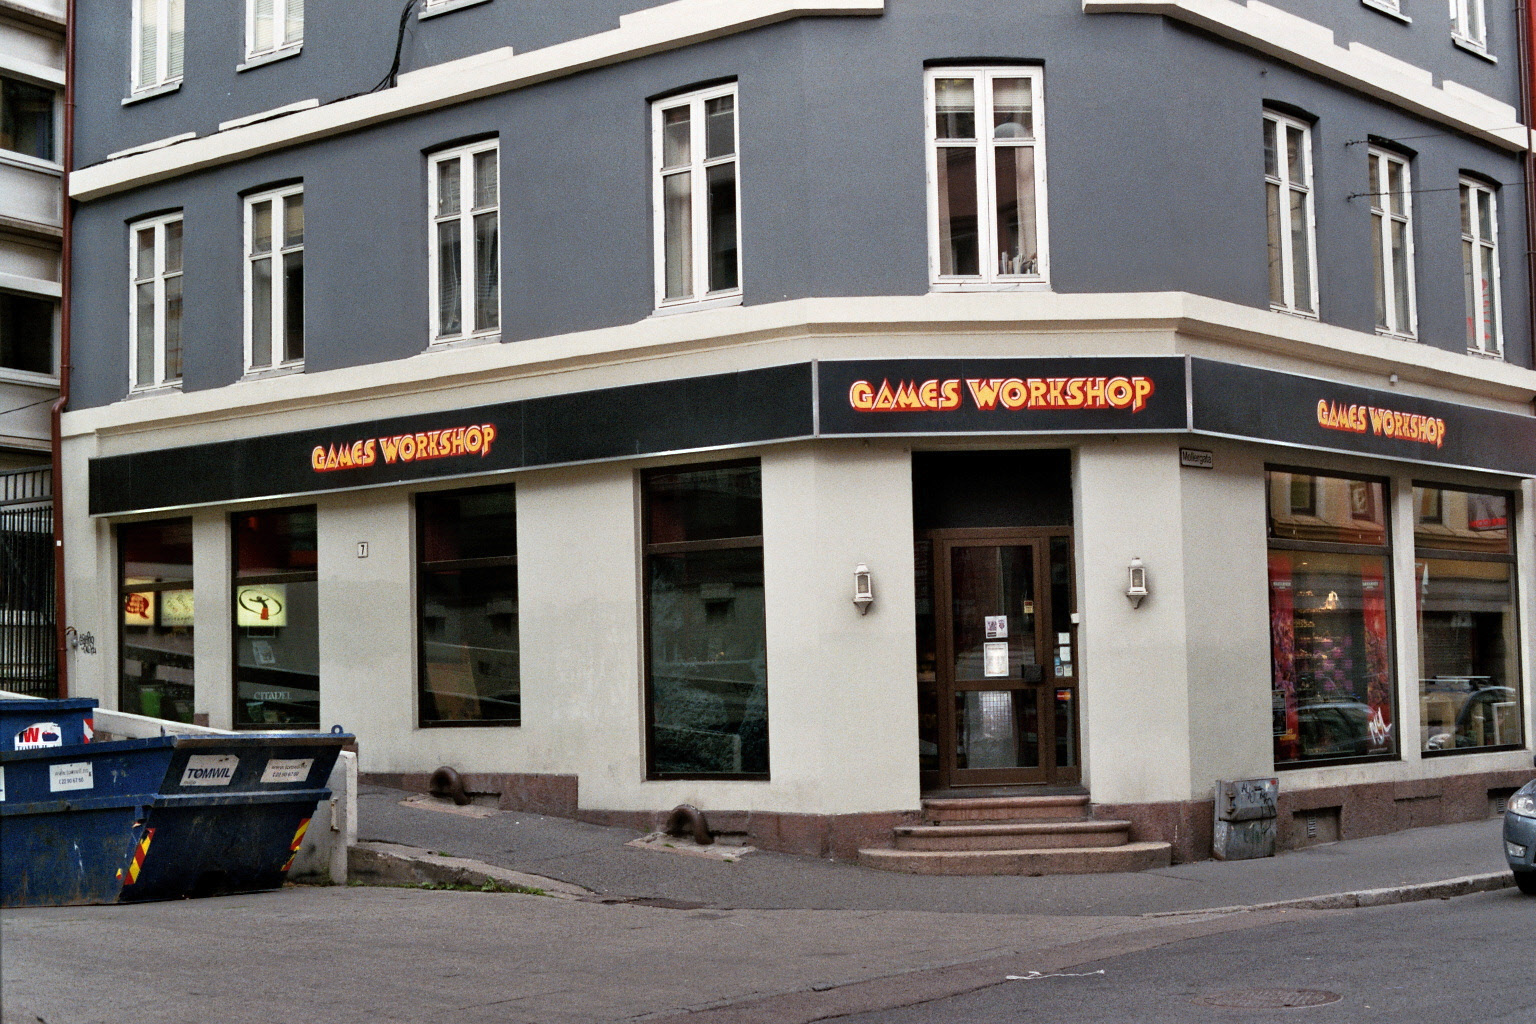 Games Workshop File Games Workshop Oslo Jpg Wikimedia Commons